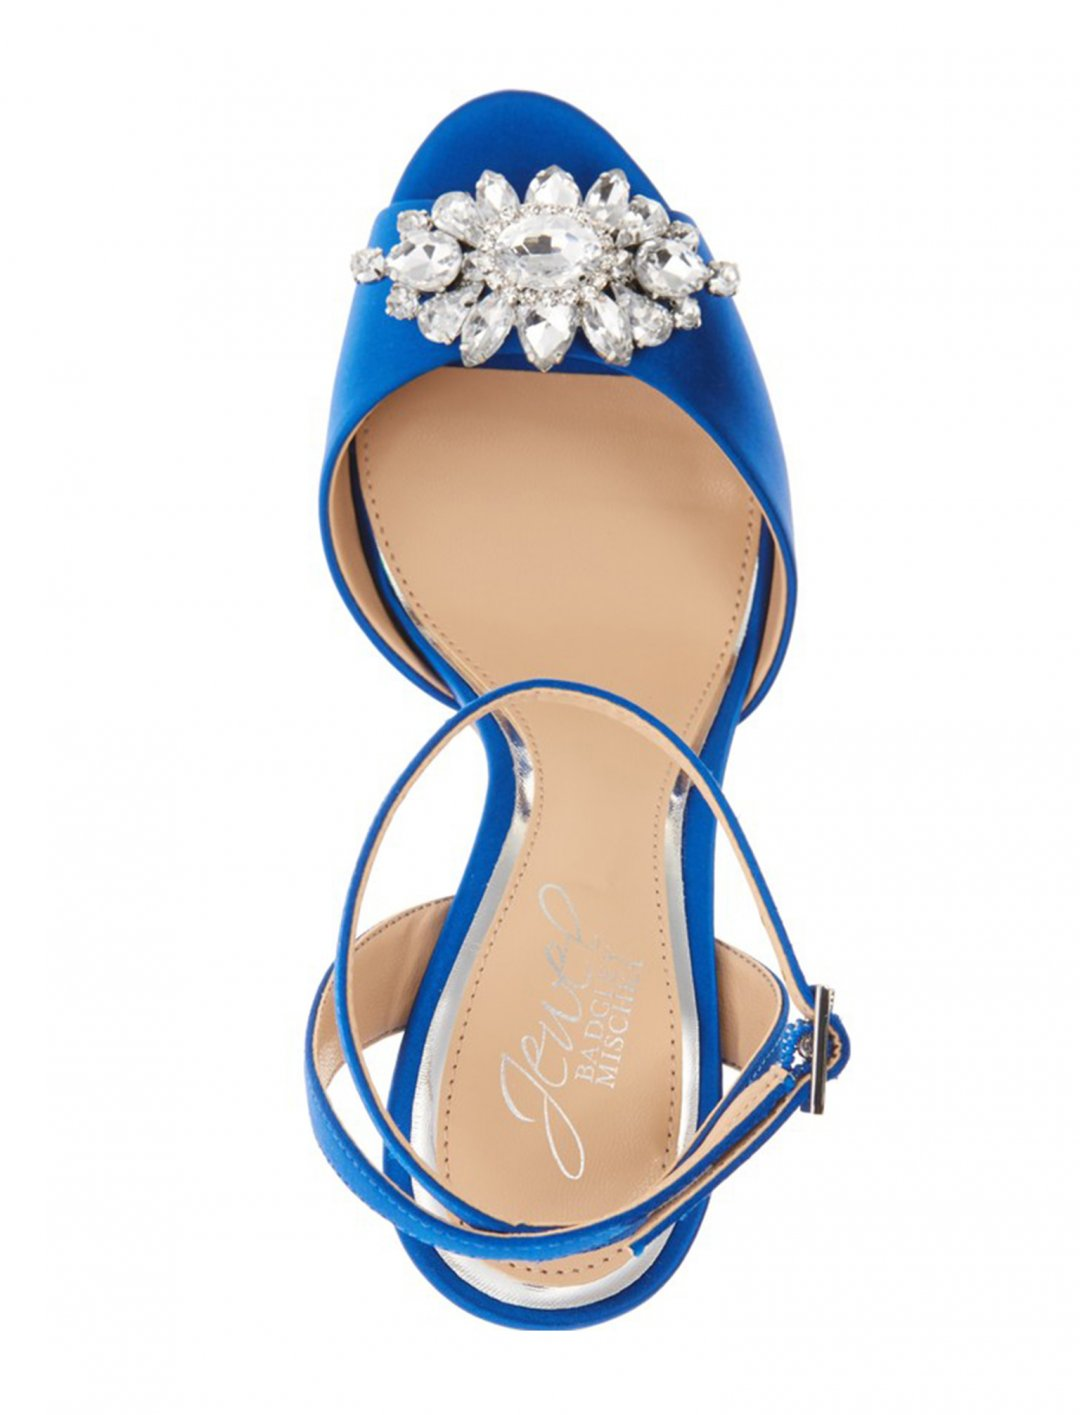 """Jewel Badgley Mischka Ankle Strap Sandal {""""id"""":12,""""product_section_id"""":1,""""name"""":""""Shoes"""",""""order"""":12} Jewel Badgley Mischka"""